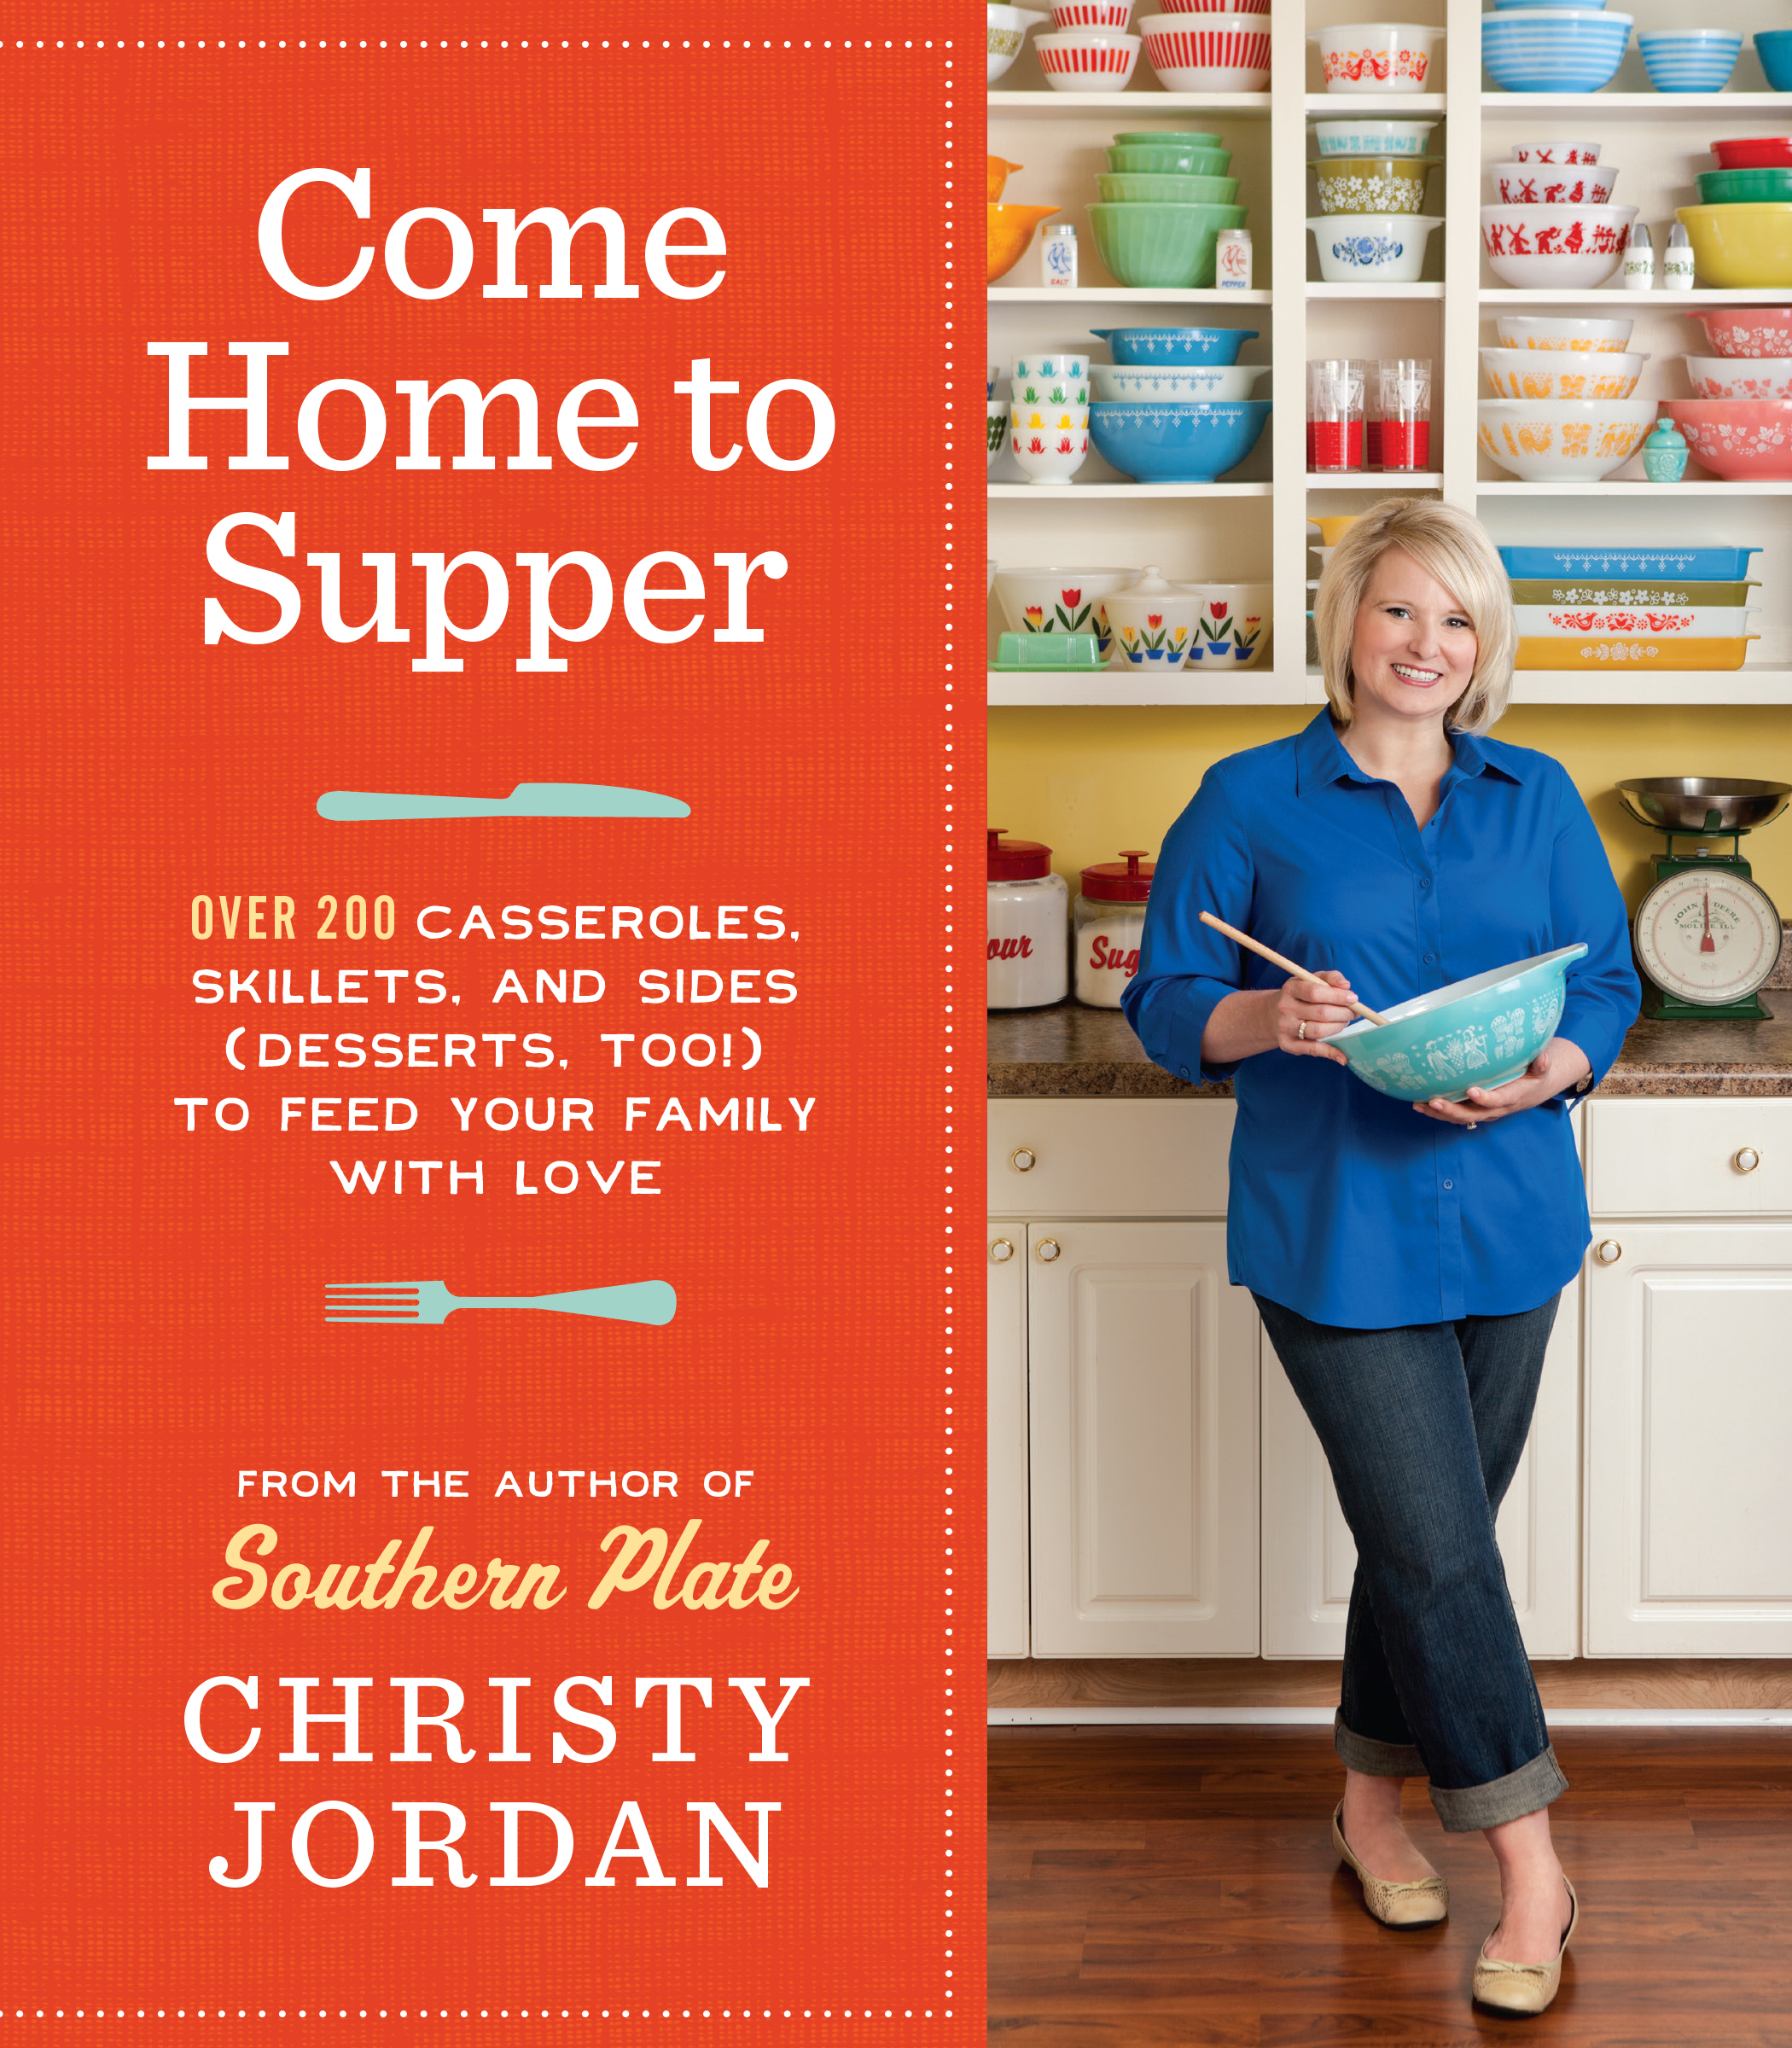 Come Home to Supper book cover